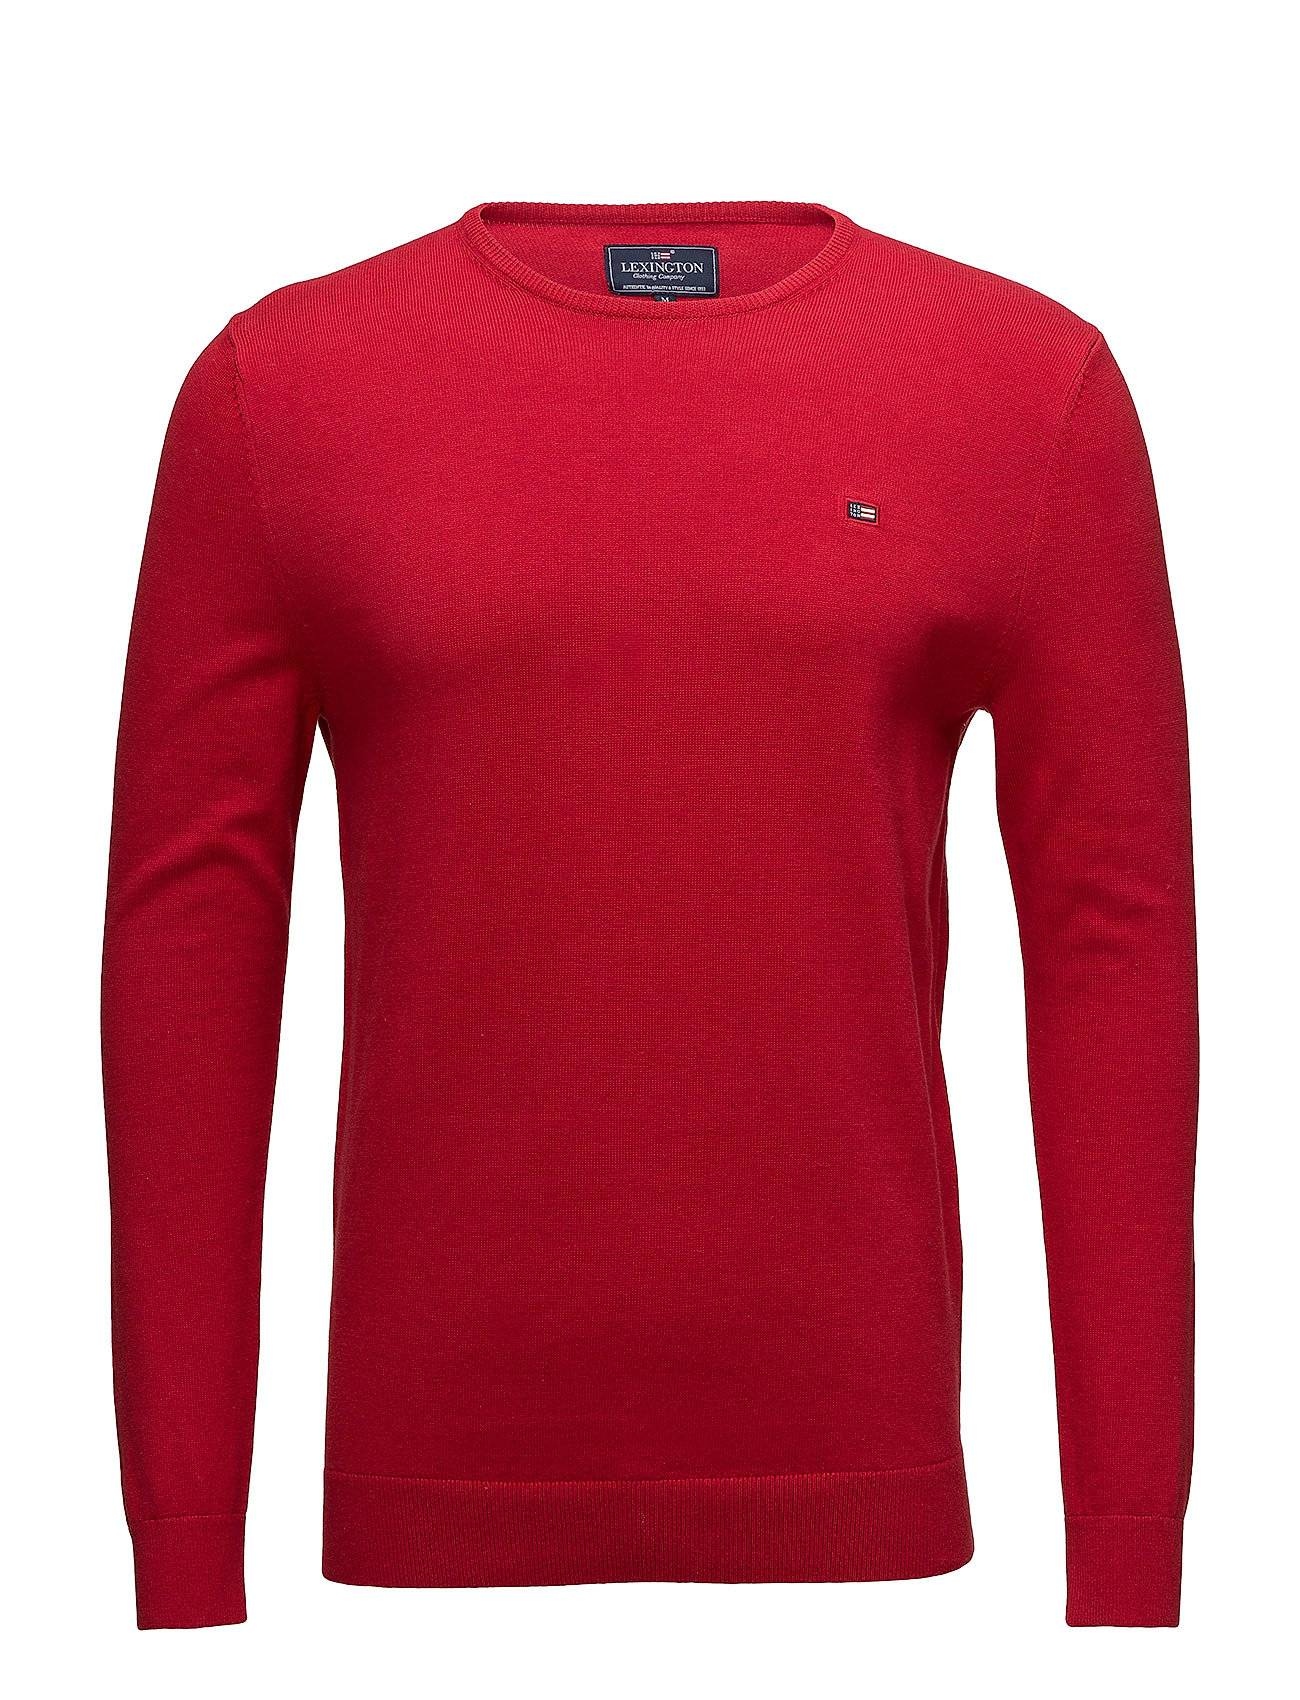 Lexington Clothing Bradley Crewneck Sweater